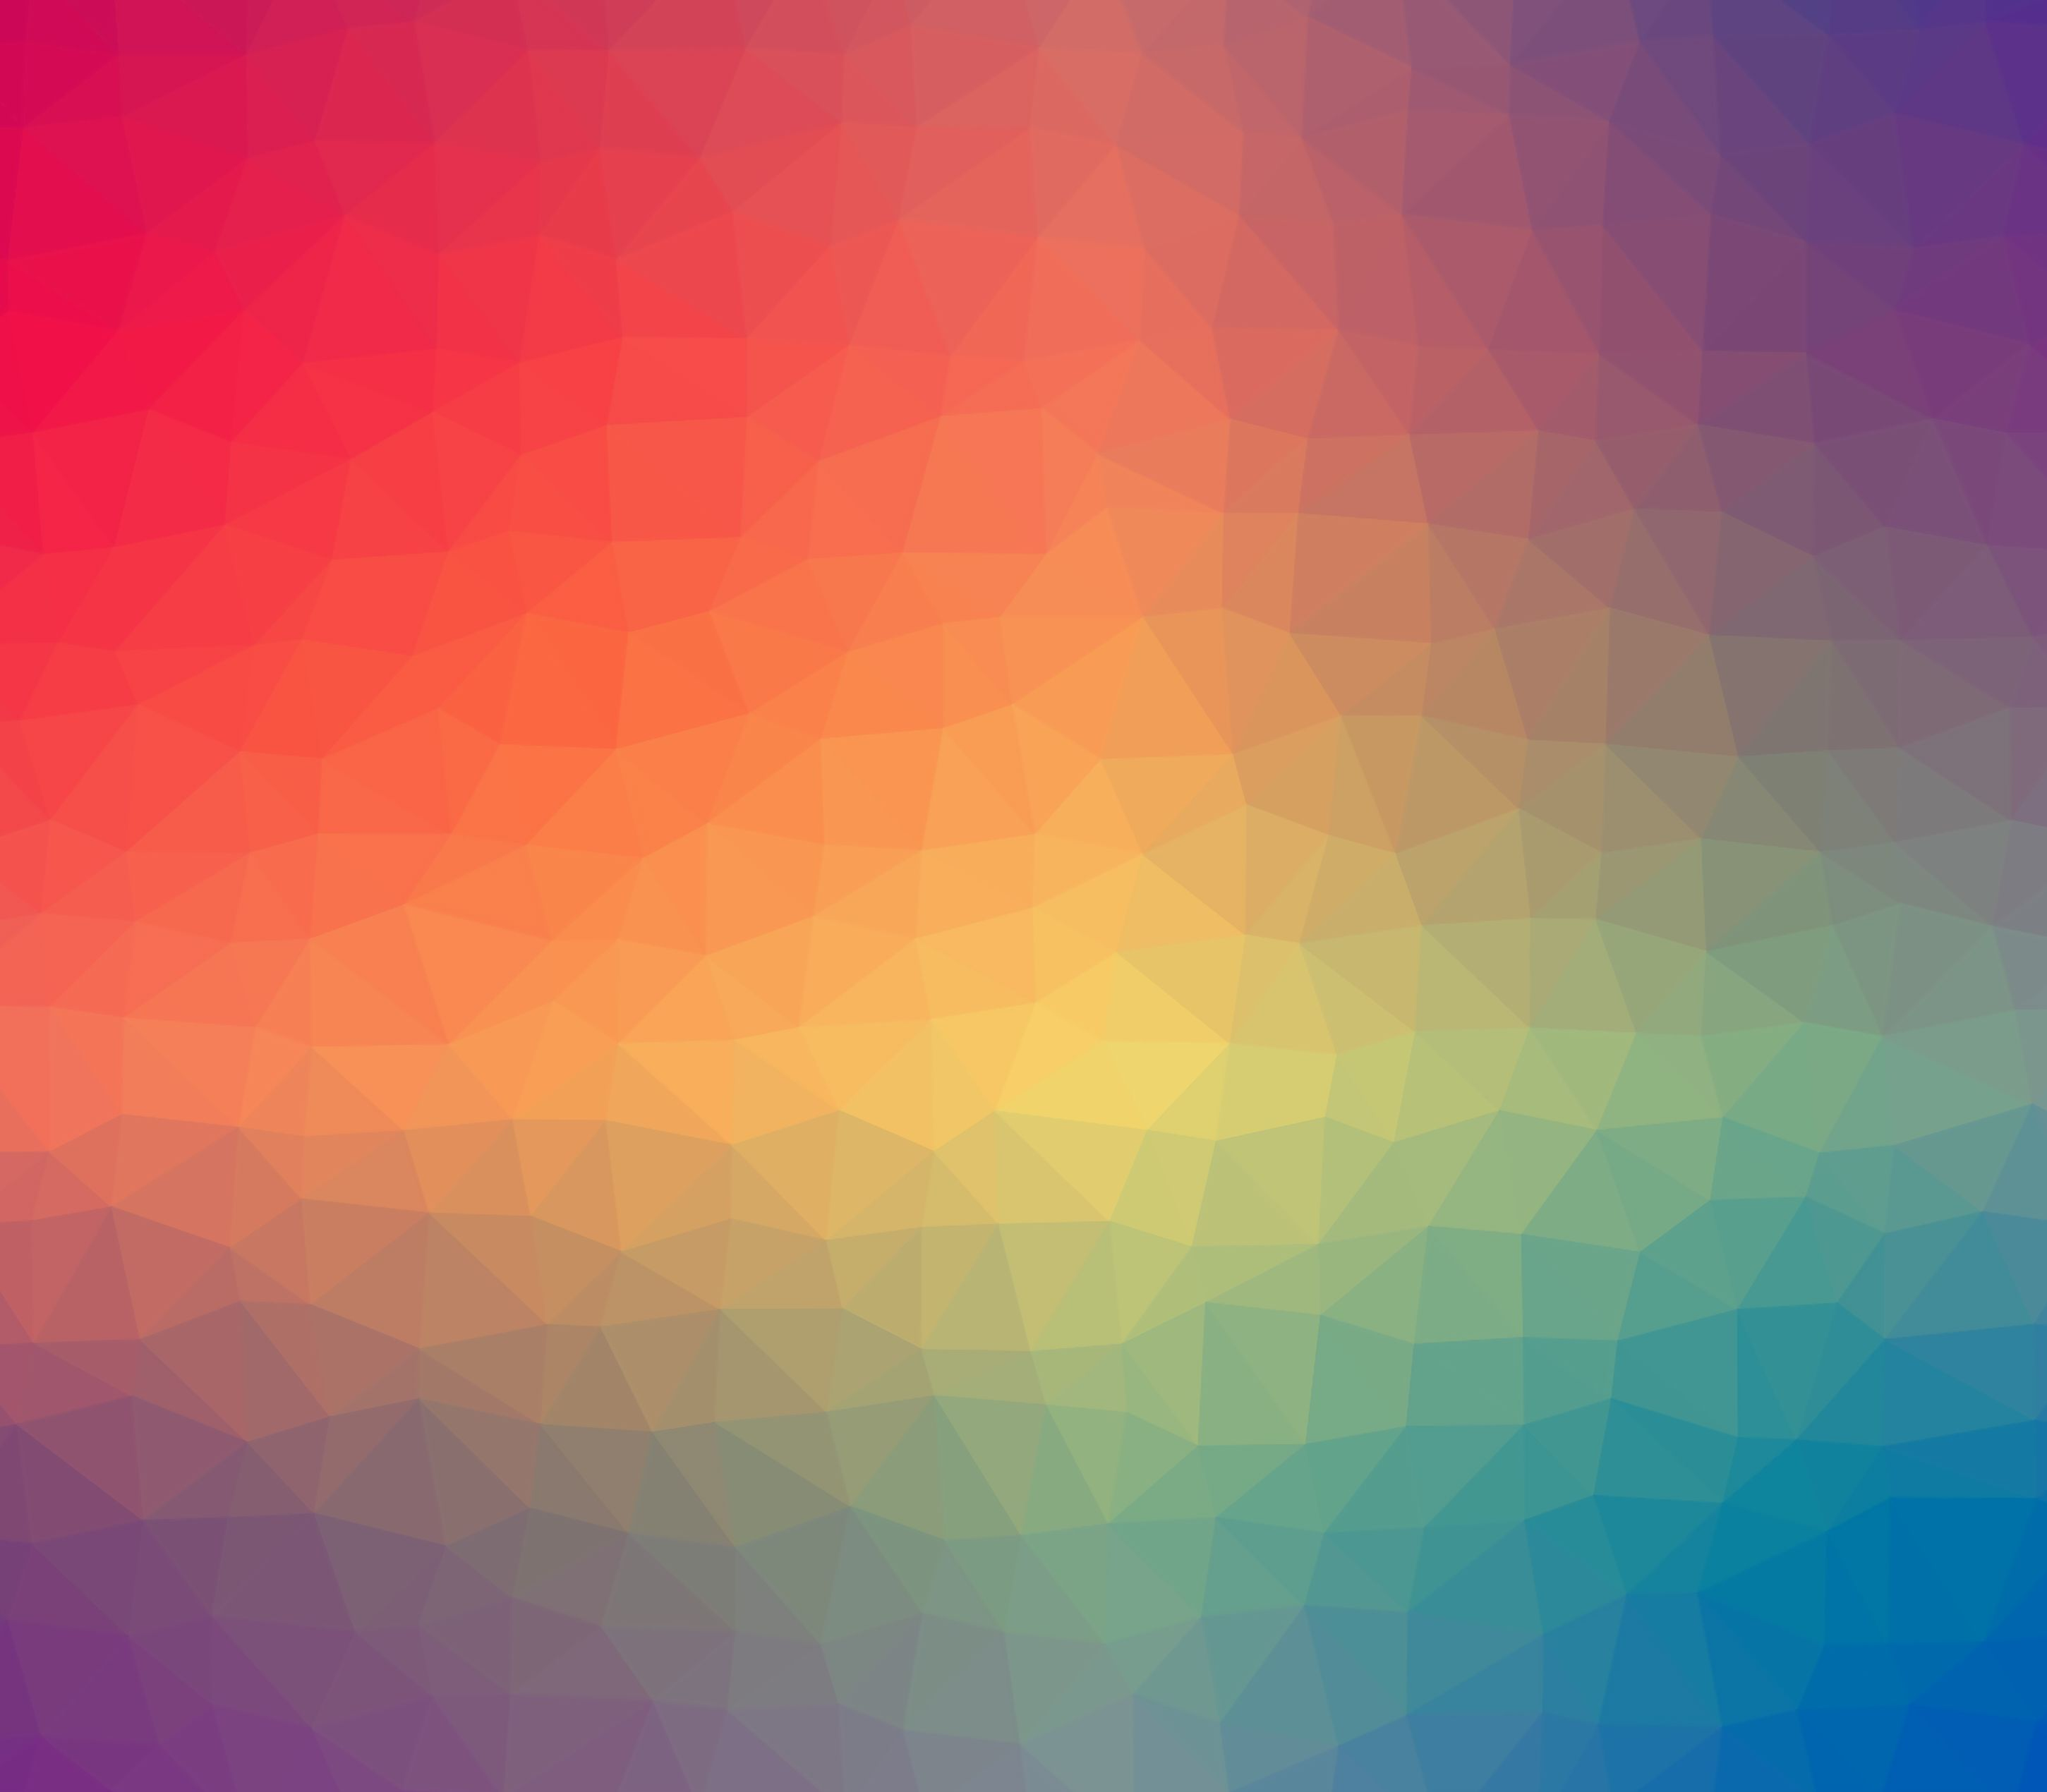 111379 download wallpaper Textures, Texture, Polygon, Gradient, Triangles, Multicolored, Motley, Forms, Form screensavers and pictures for free